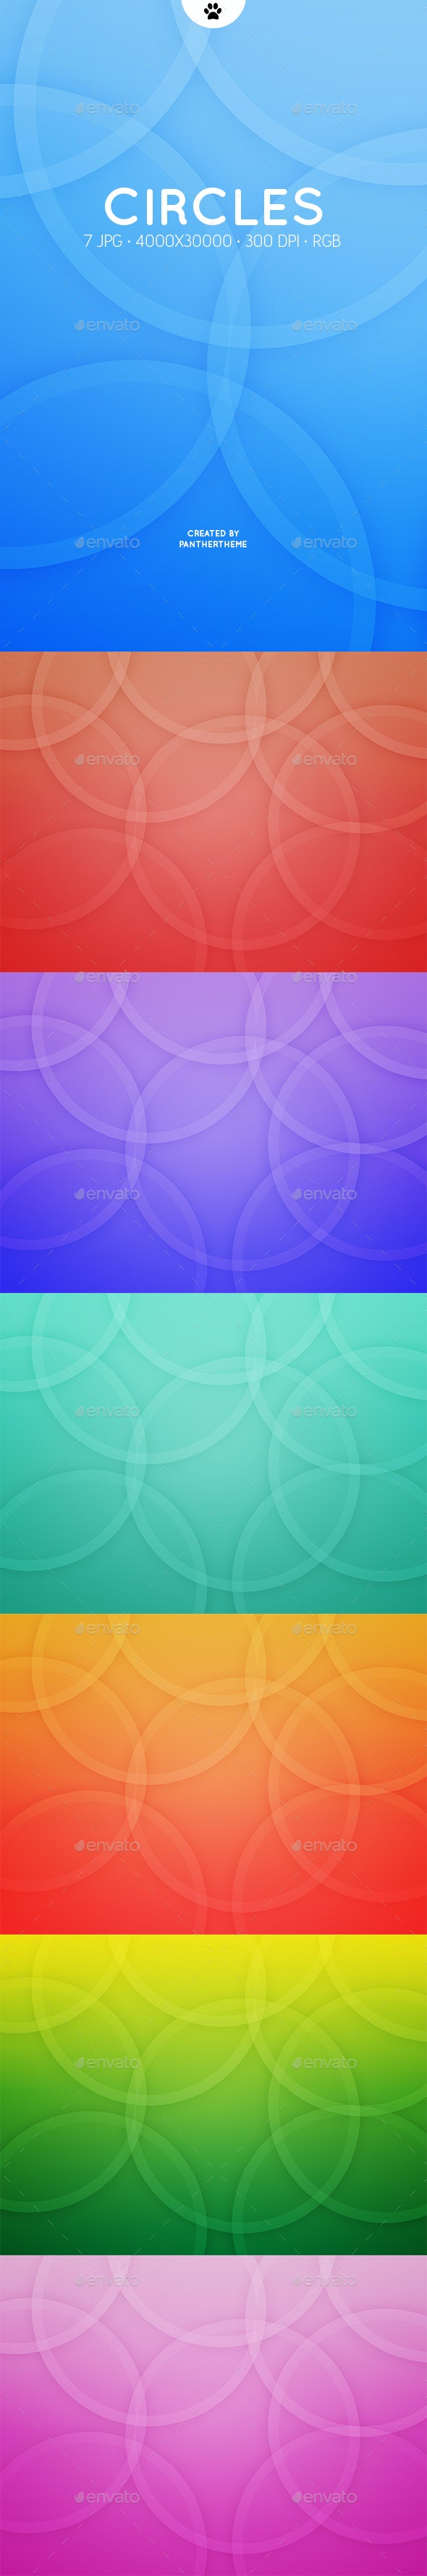 Circles Backgrounds - Abstract Backgrounds